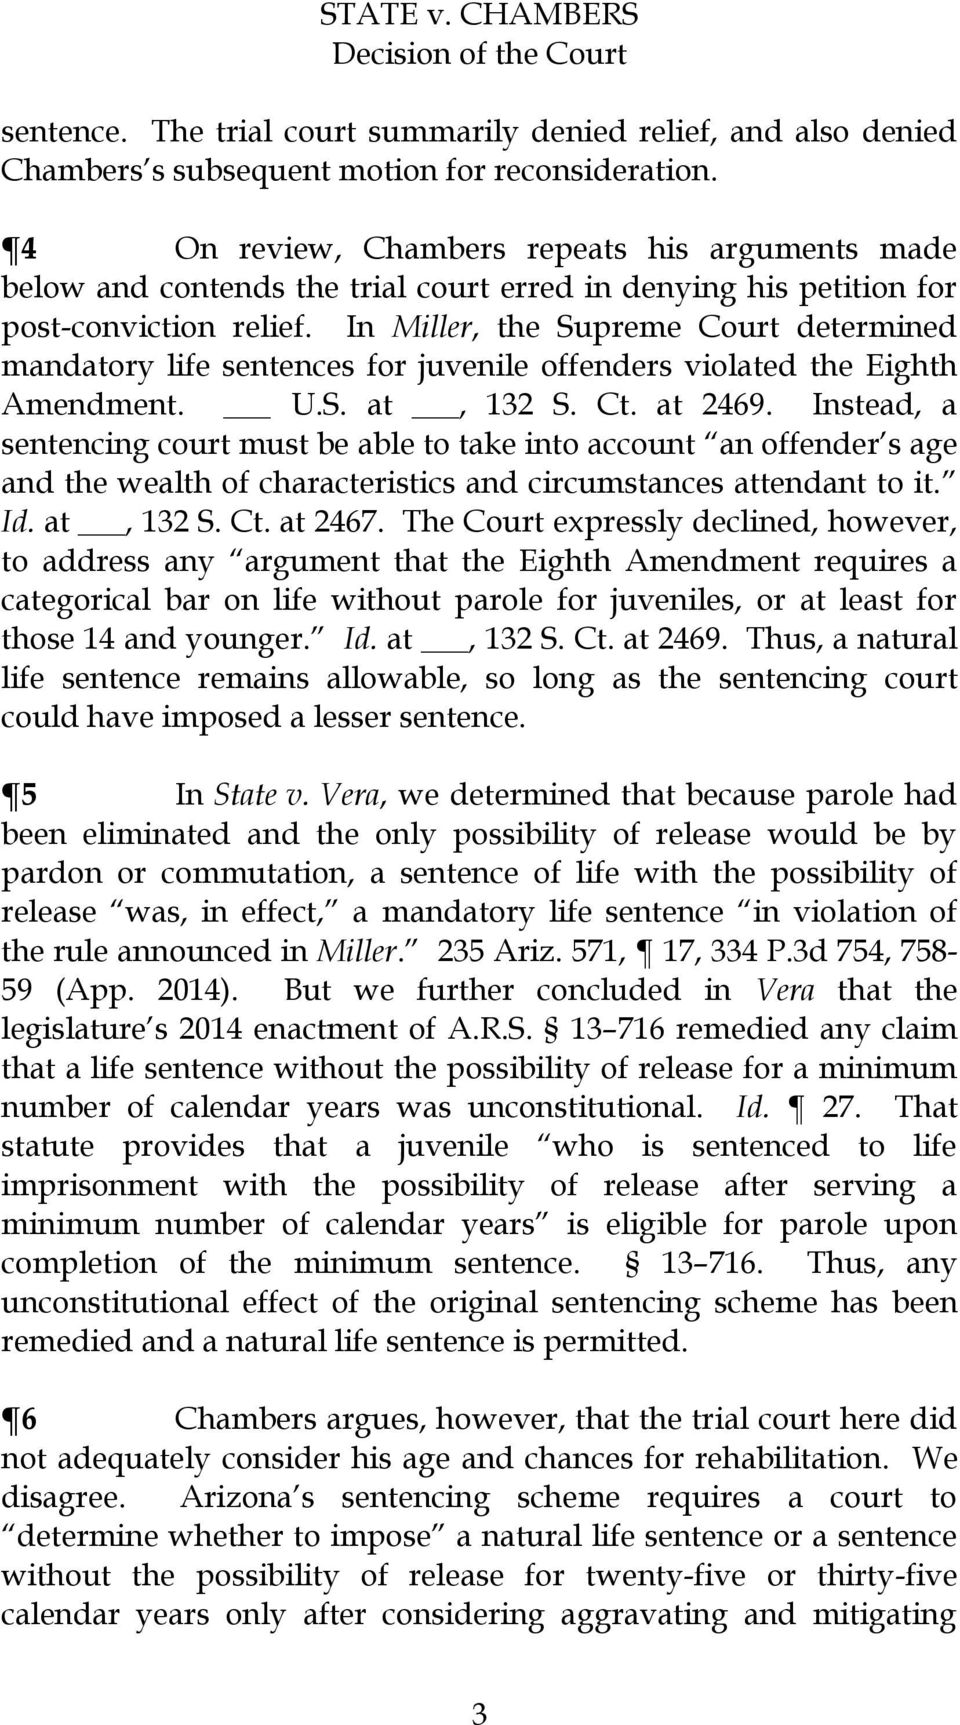 In Miller, the Supreme Court determined mandatory life sentences for juvenile offenders violated the Eighth Amendment. U.S. at, 132 S. Ct. at 2469.